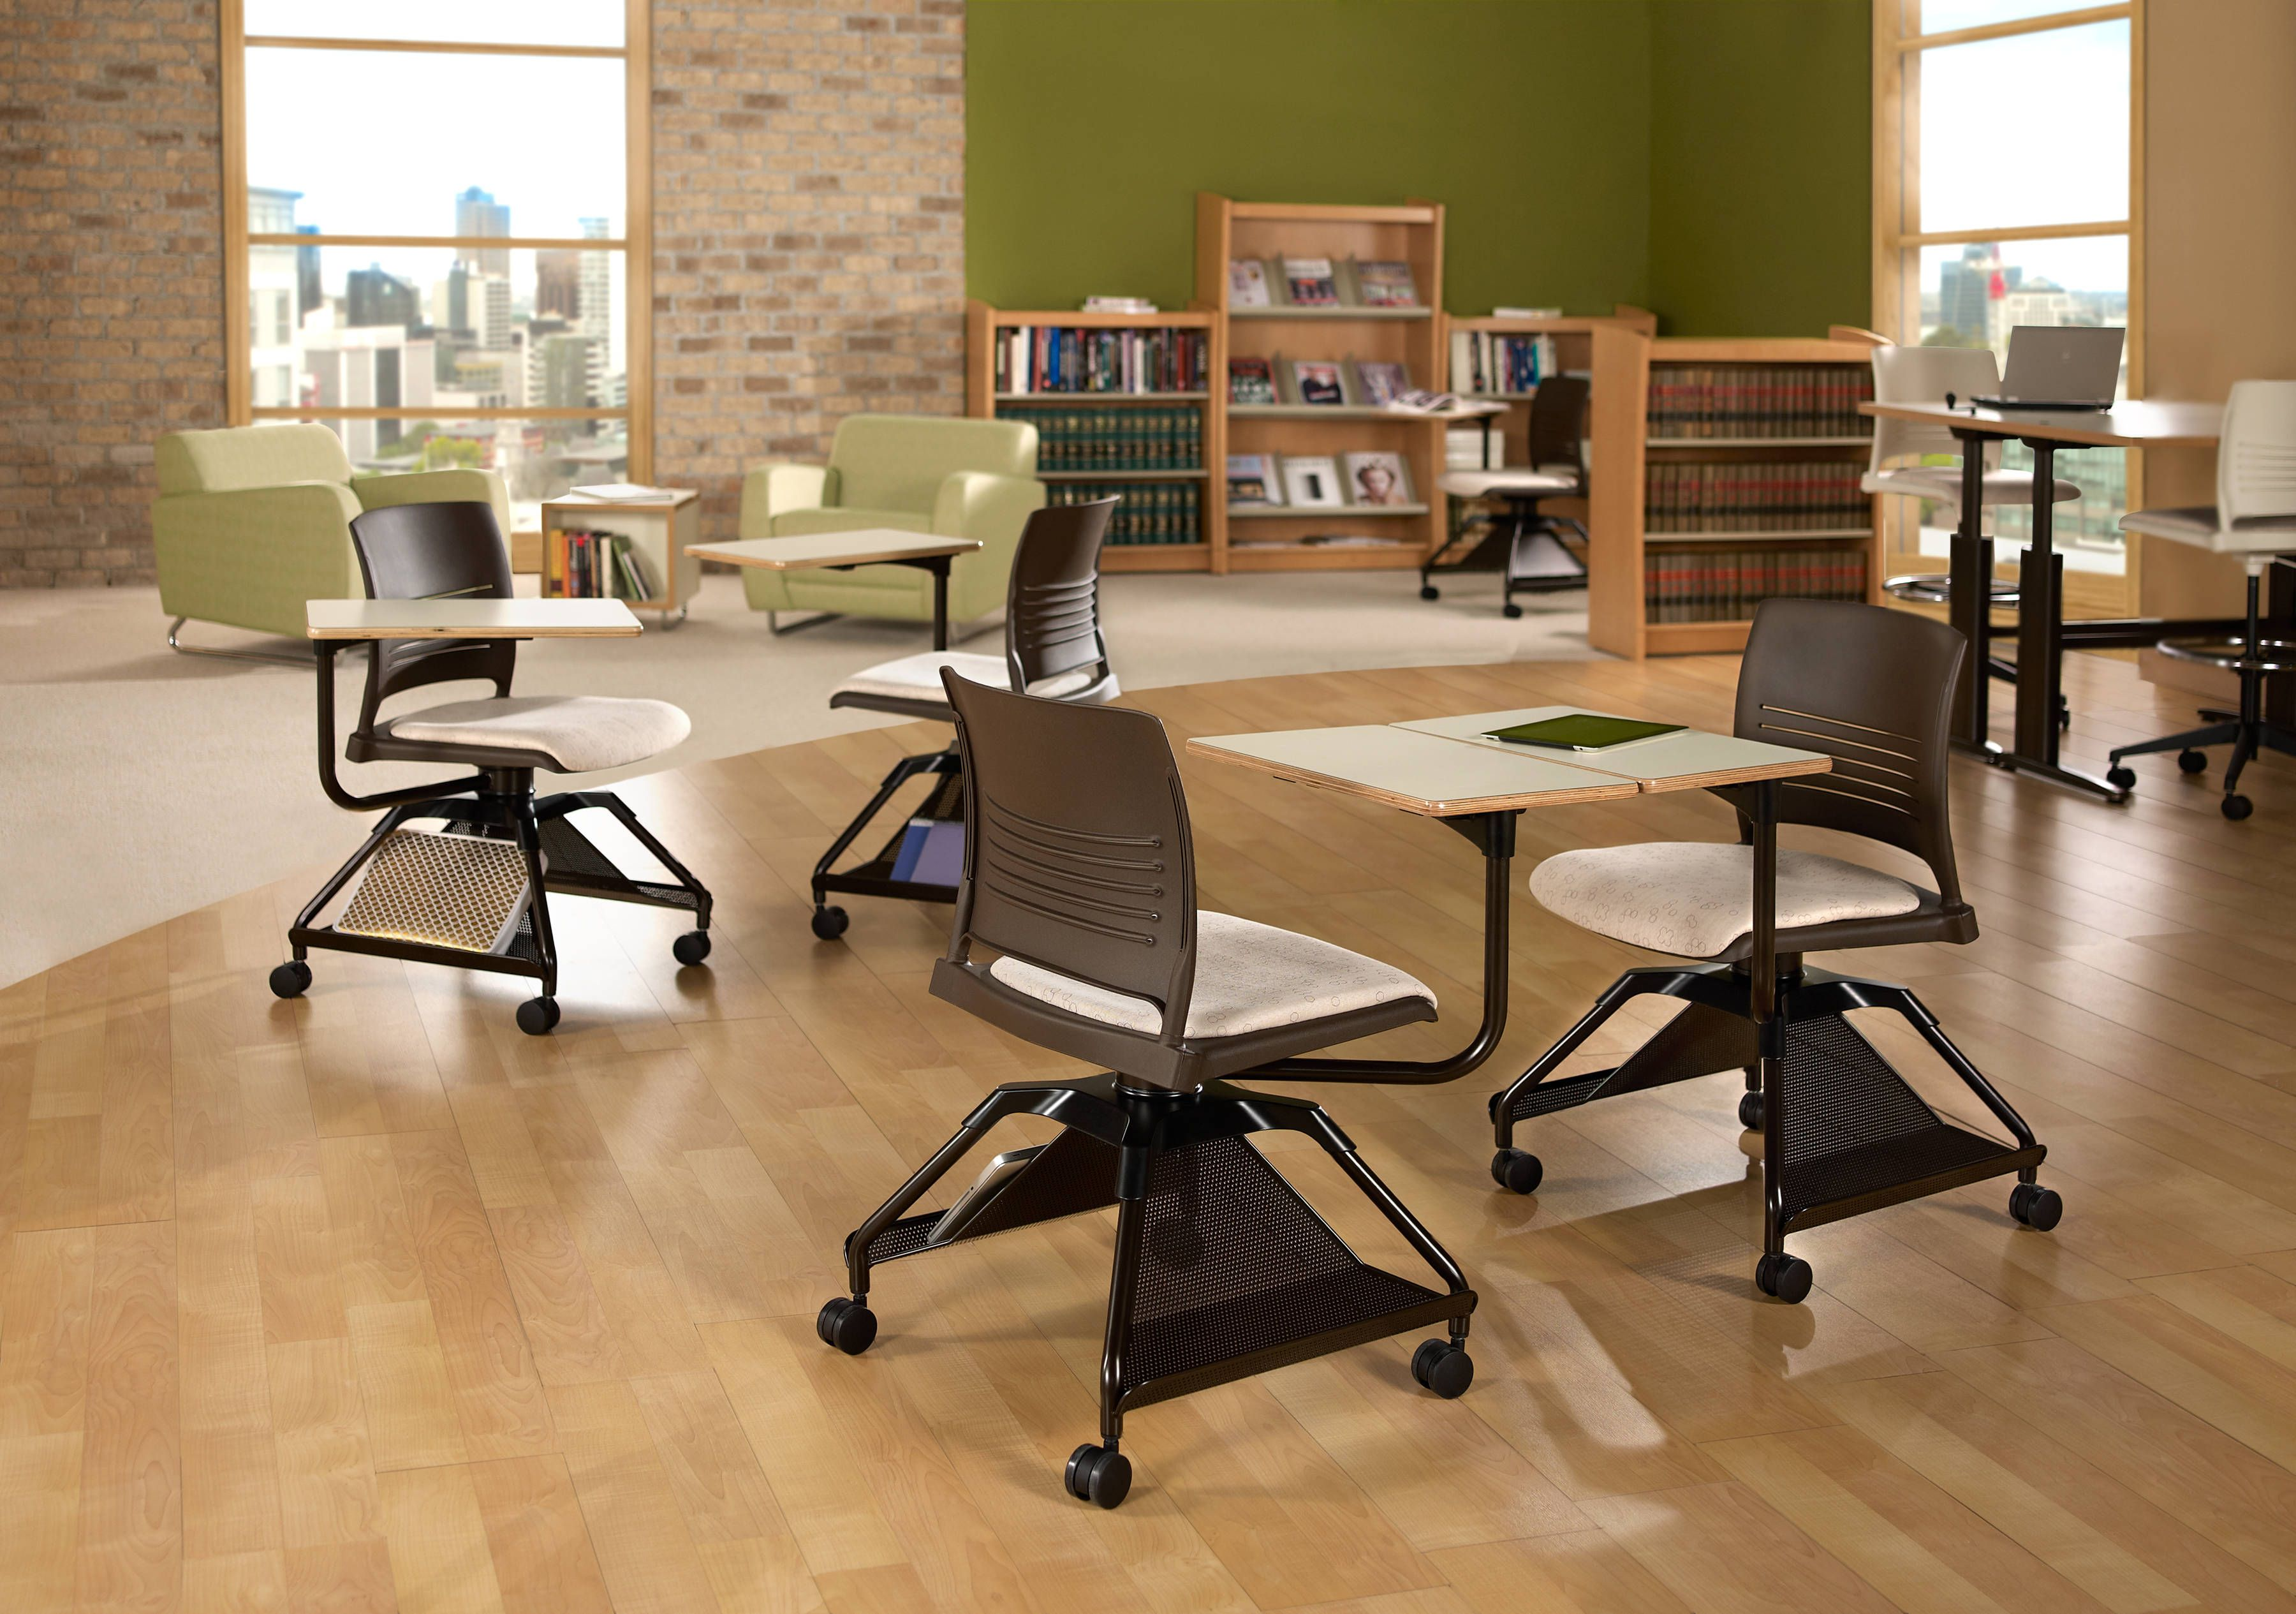 Merveilleux KI Is The #1 Supplier Of Educational Furniture Solutions. Here Is KIu0027s  Award